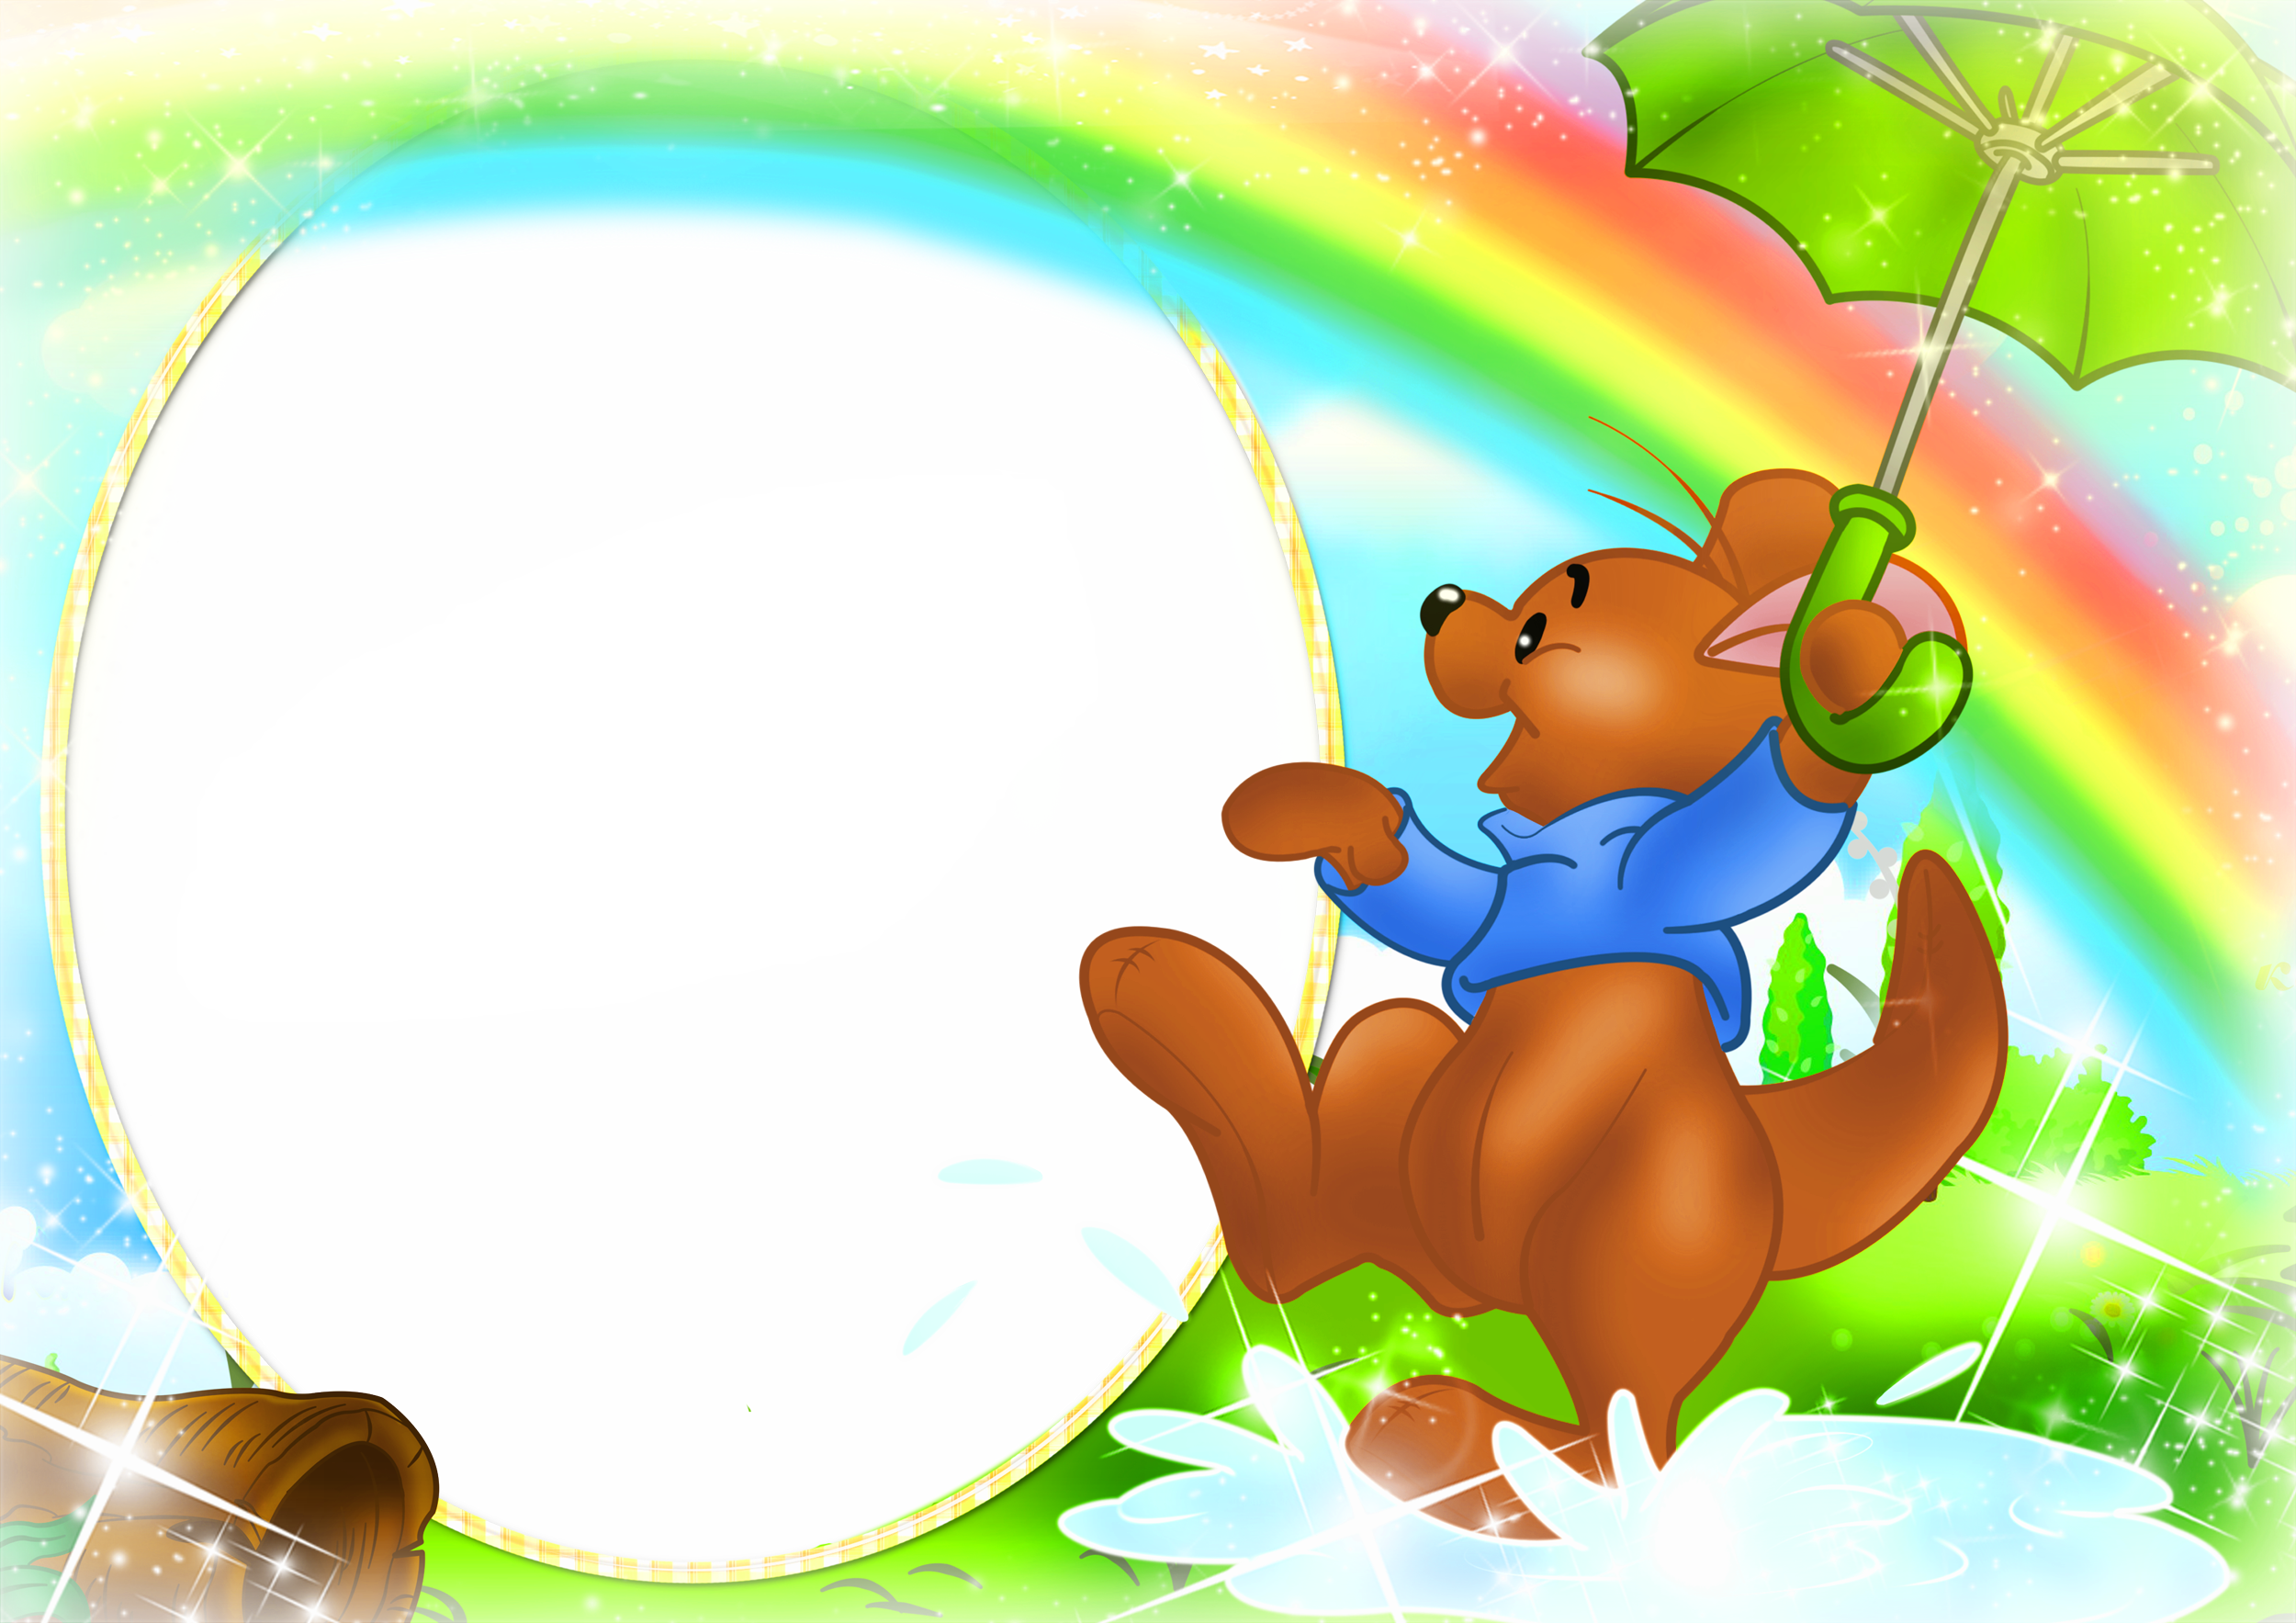 Transparent kids png frame with kanga winnie the pooh gallery transparent kids png frame with kanga winnie the pooh voltagebd Gallery